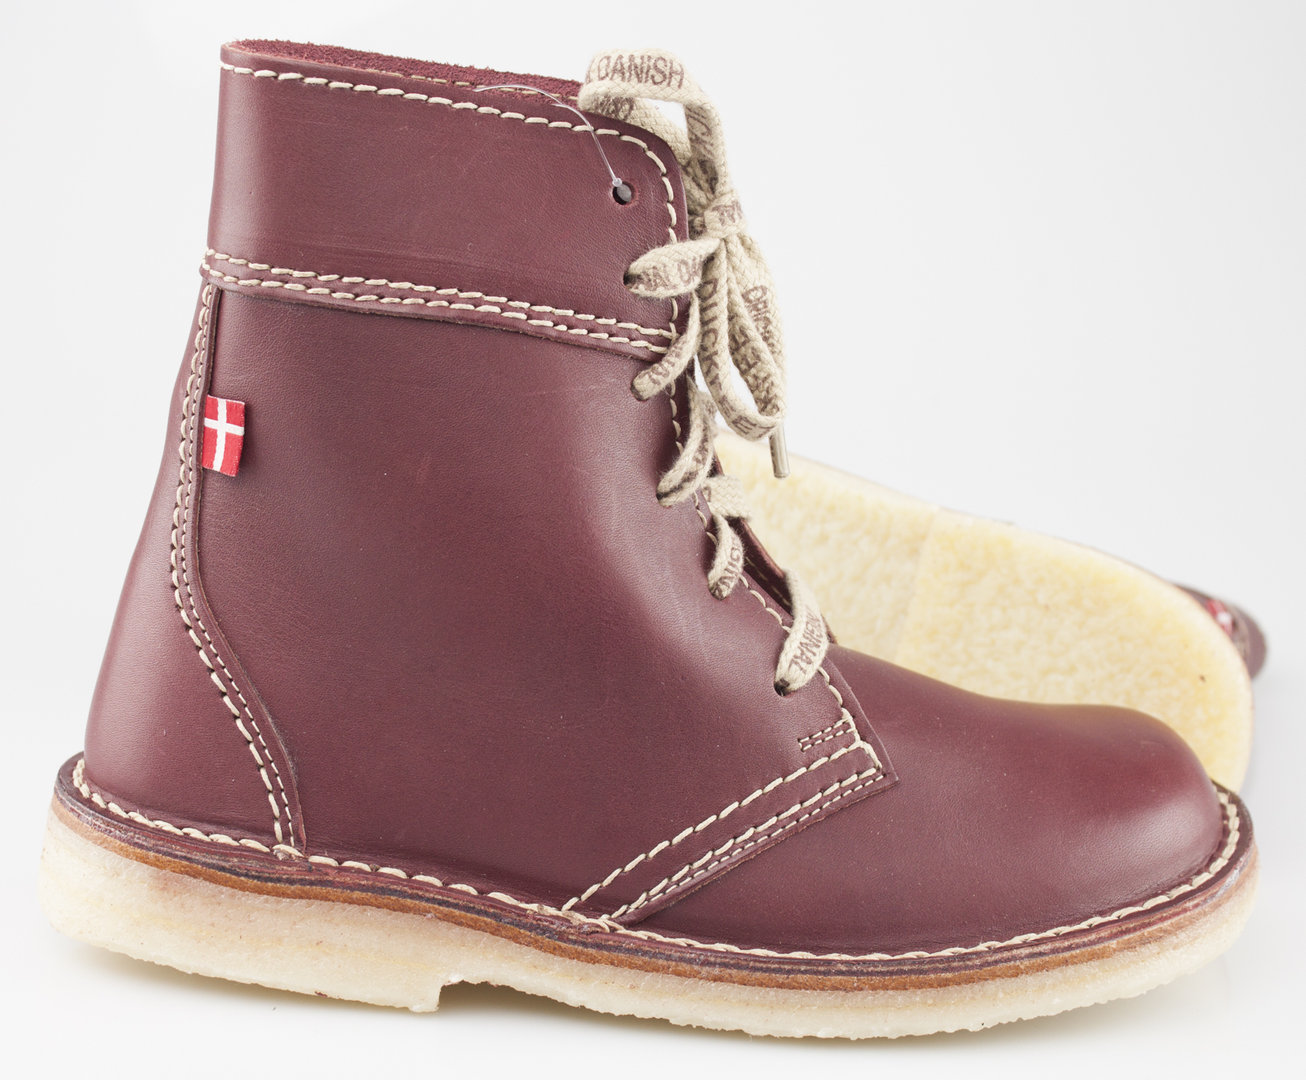 e79ba0a549c Duckfeet FABORG laced high boots bordo